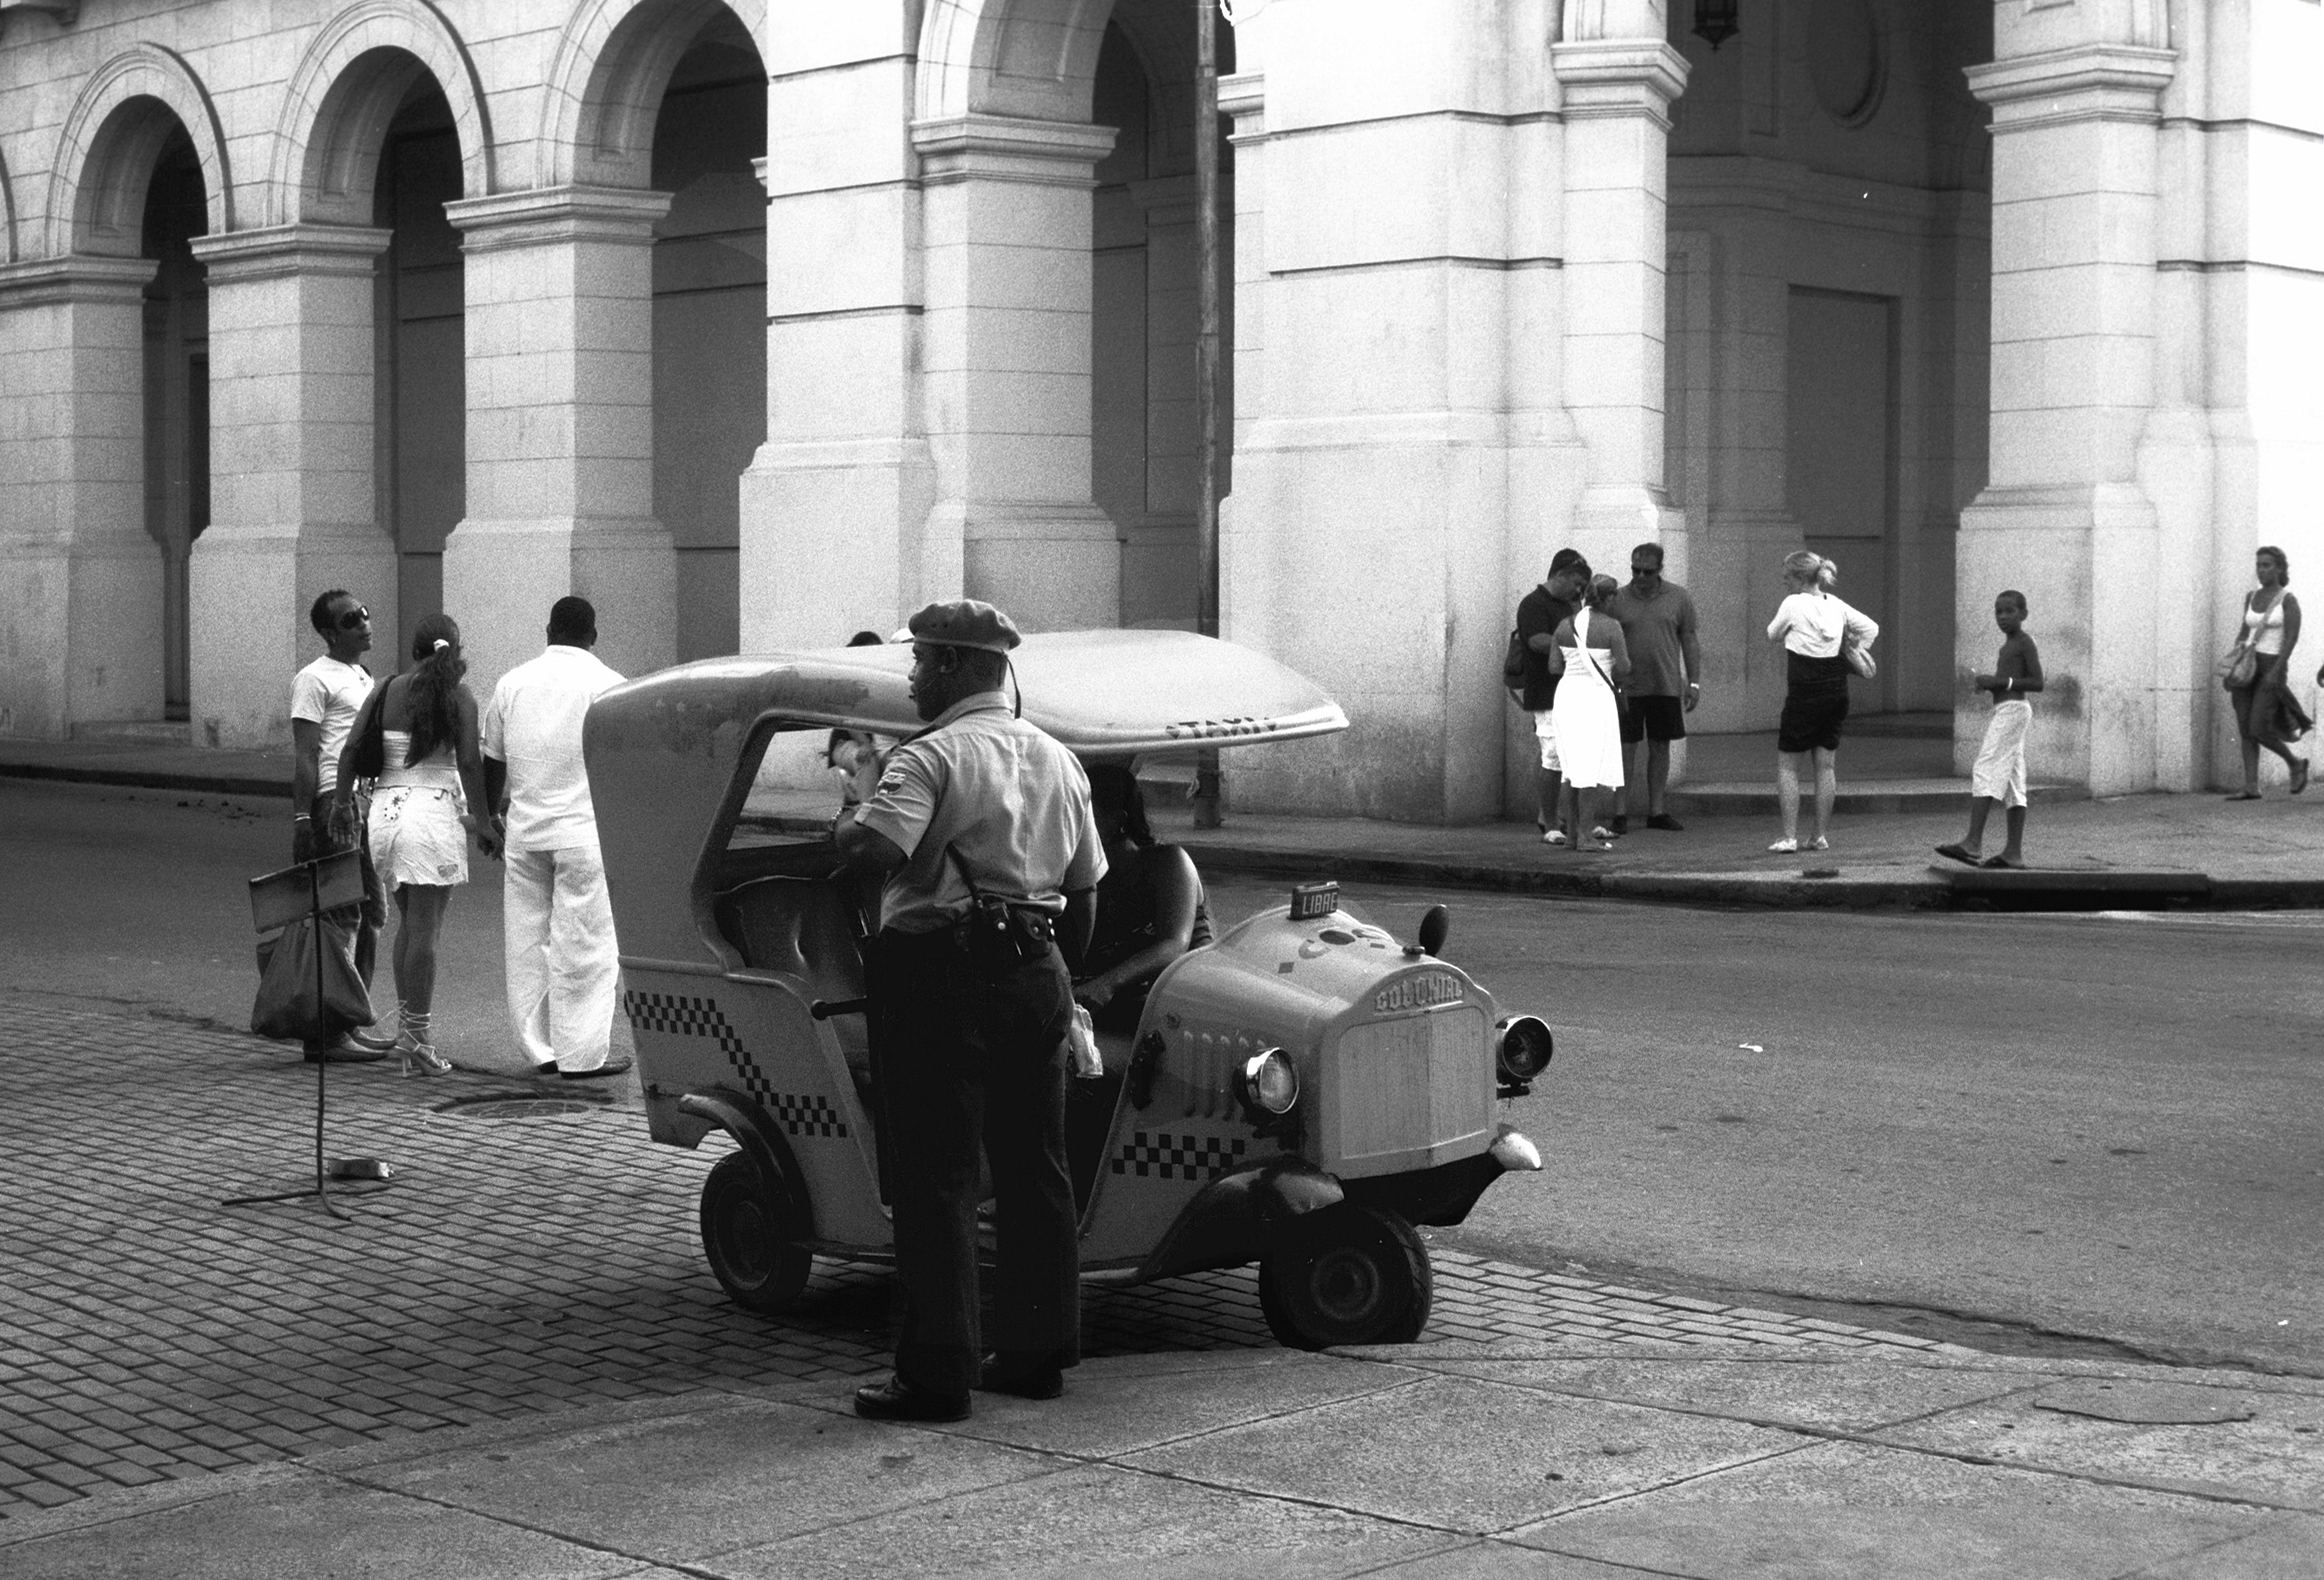 Cuban police officer